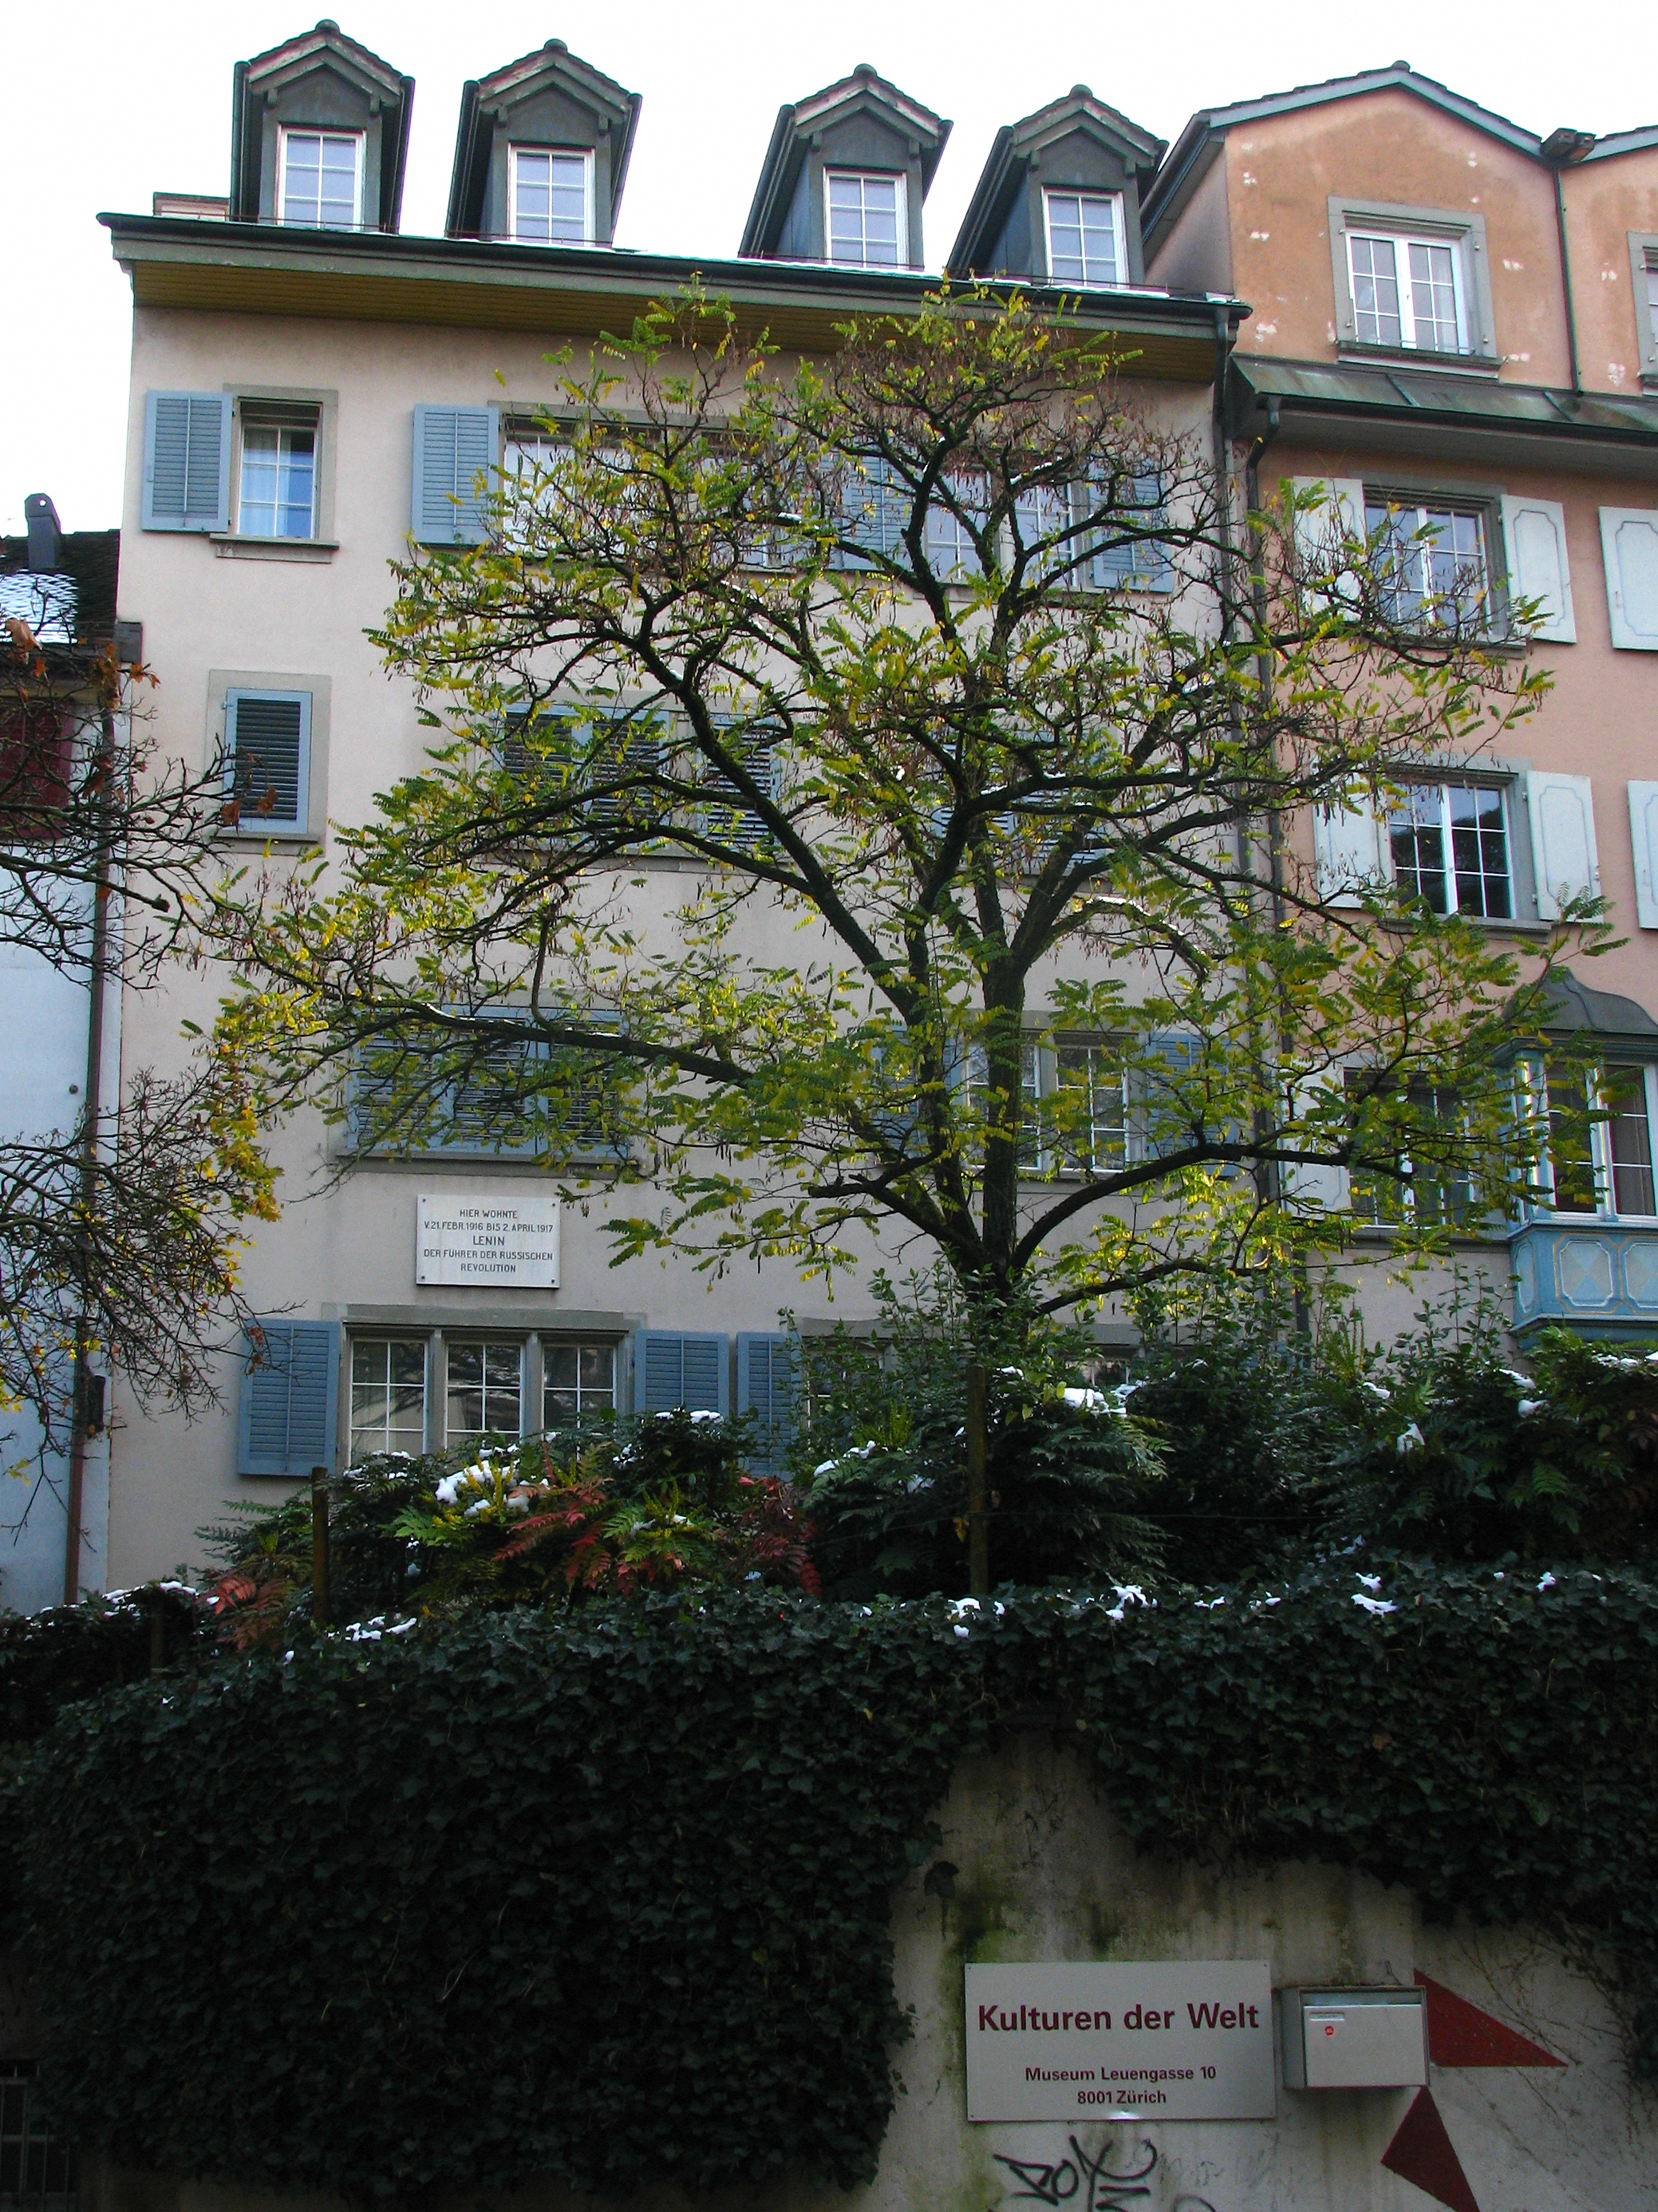 Where Lenin lived in Zürich